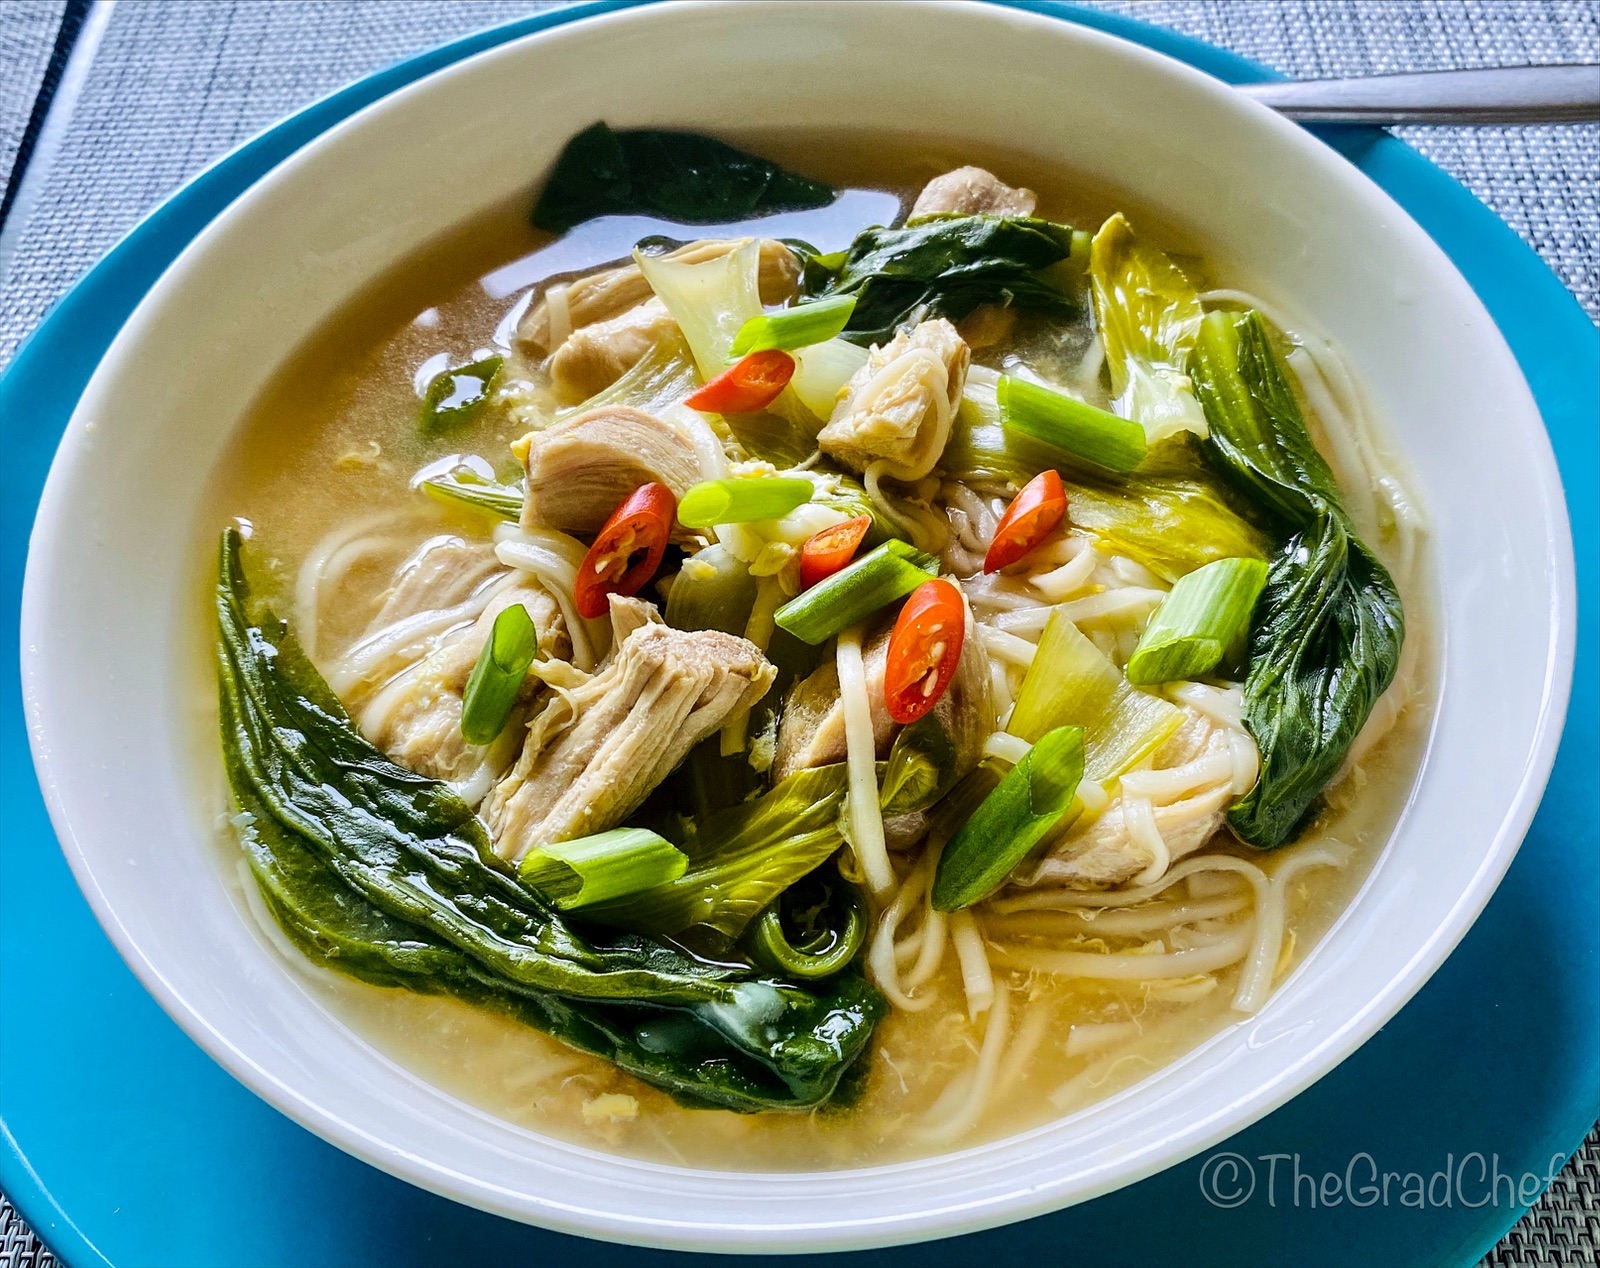 CHICKEN AND BOK CHOY NOODLE SOUP